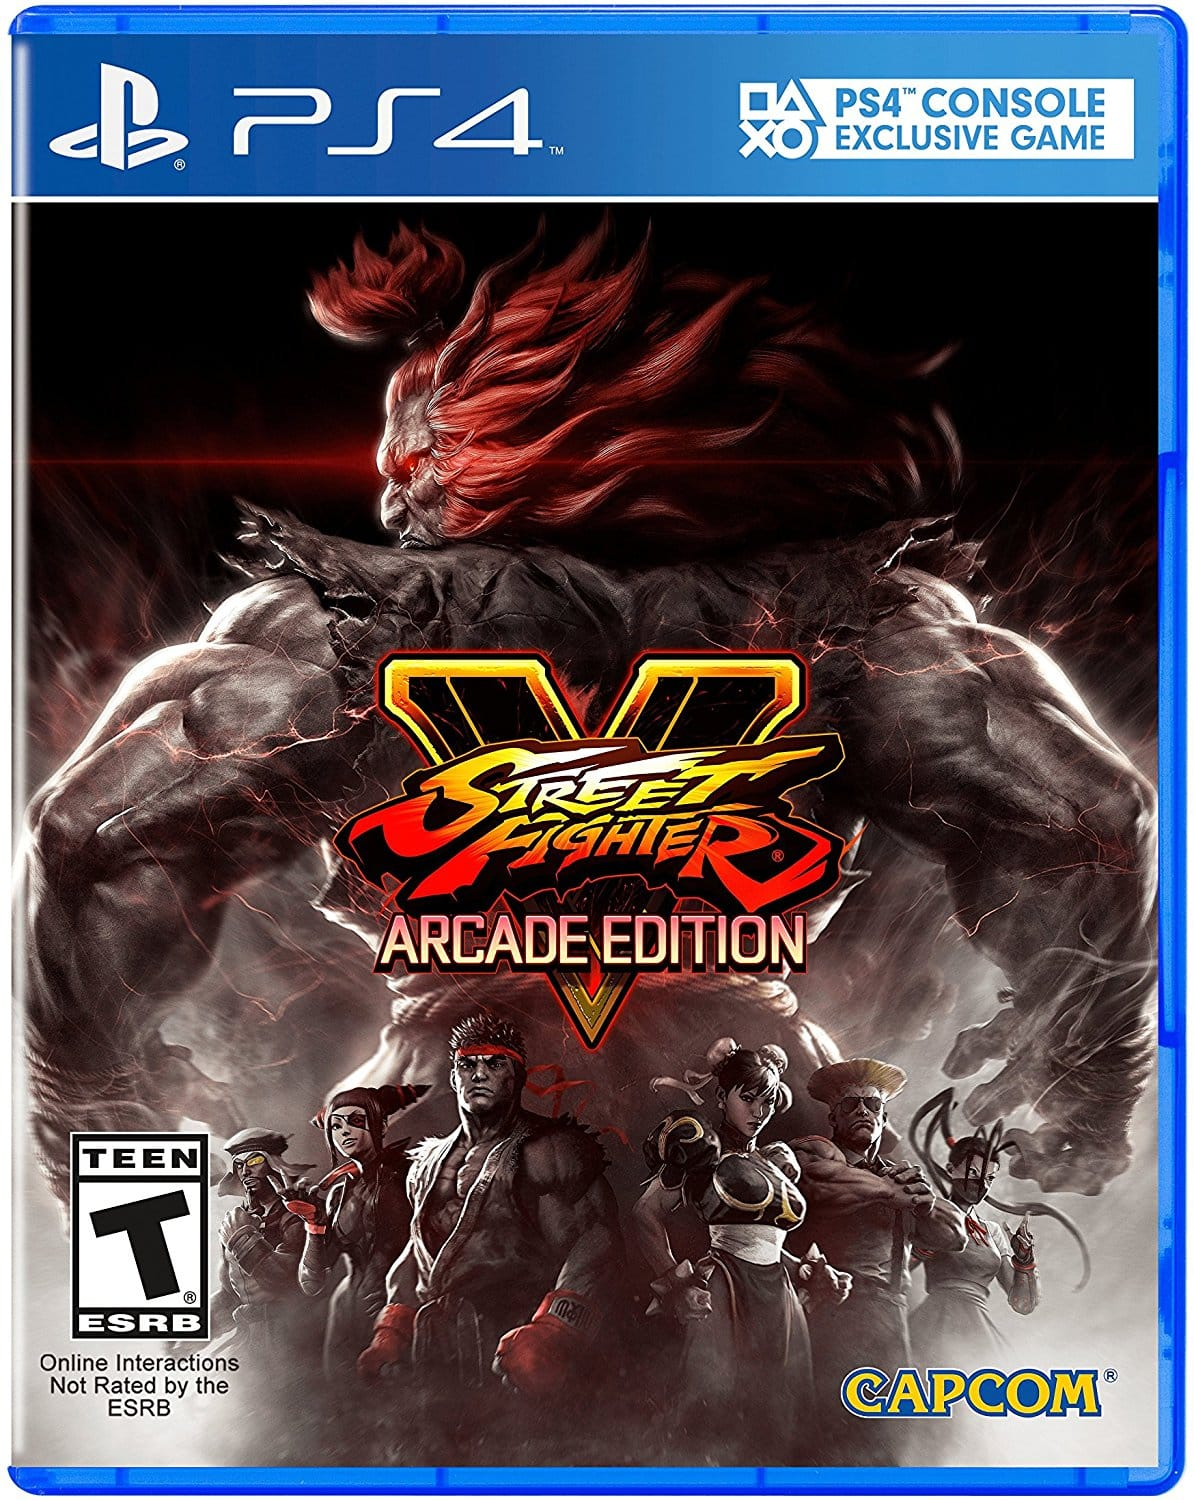 Street Fighter V: Arcade Edition (PS4) $29.99 + Free In-Store Pickup